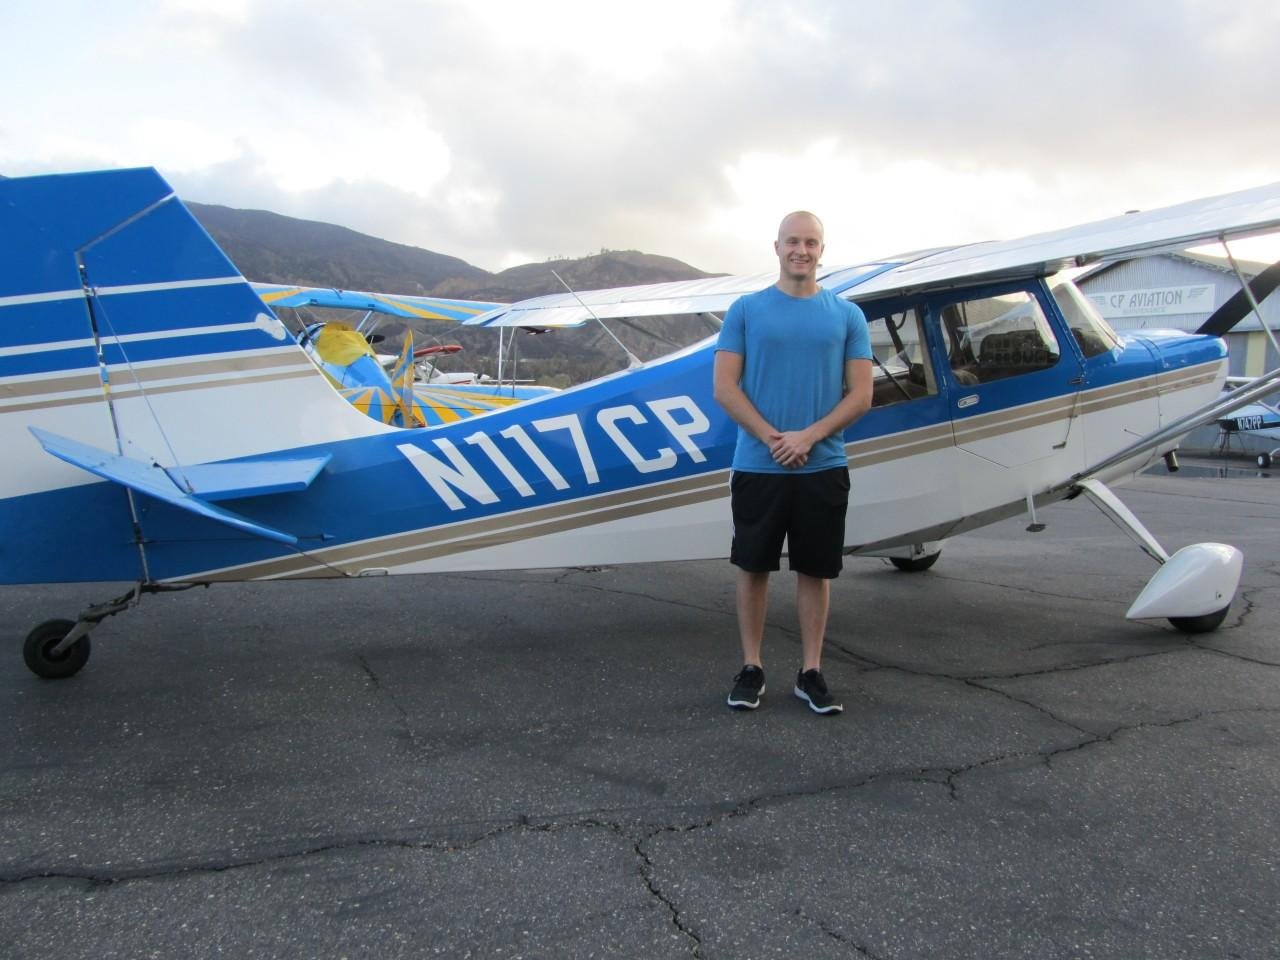 Tailwheel Endorsement - Dasan Beckman